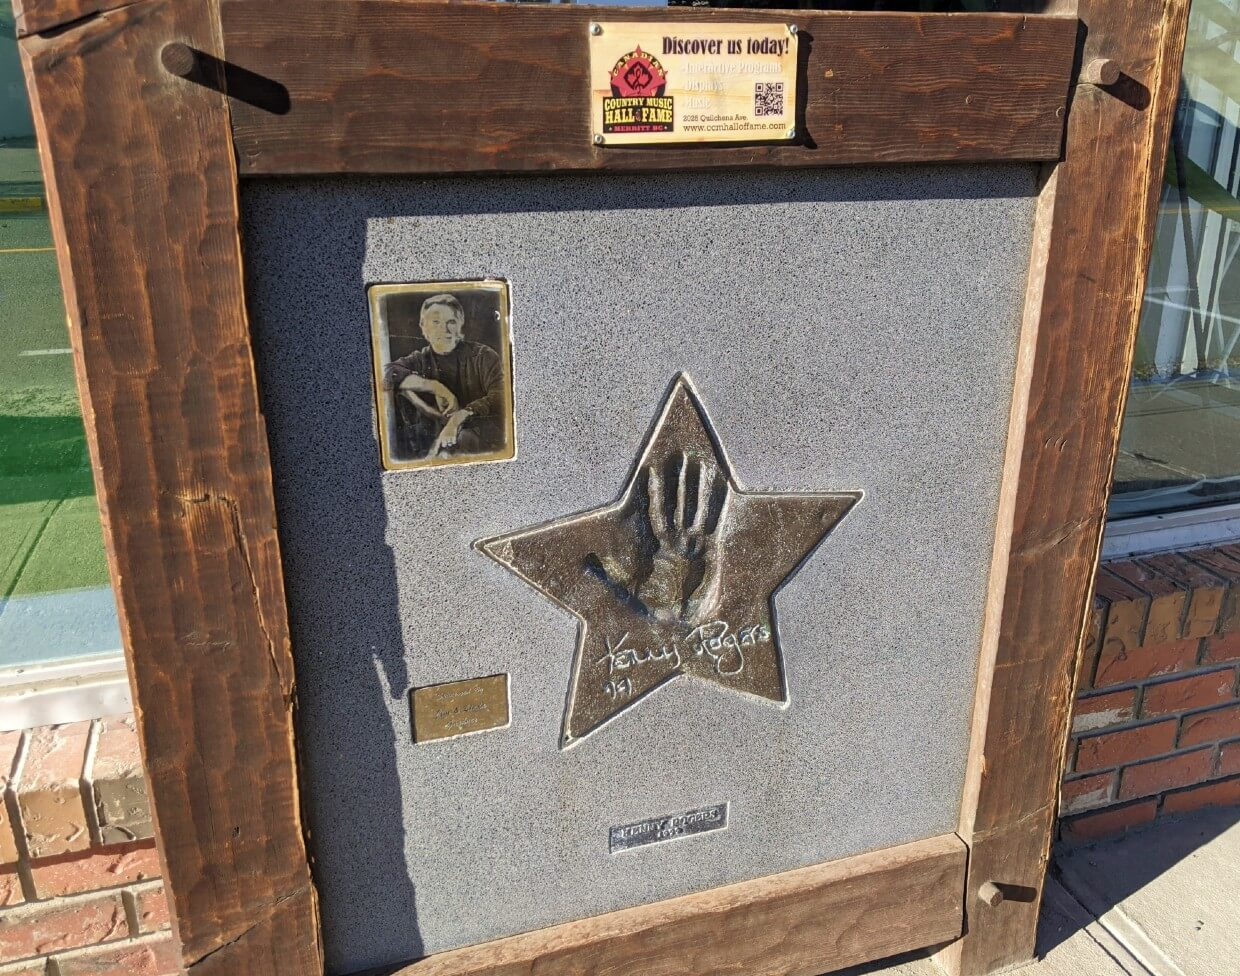 Close up of embossed gold star with Kenny Rogers hand print and signature on wooden plaque, with photograph of musician on left